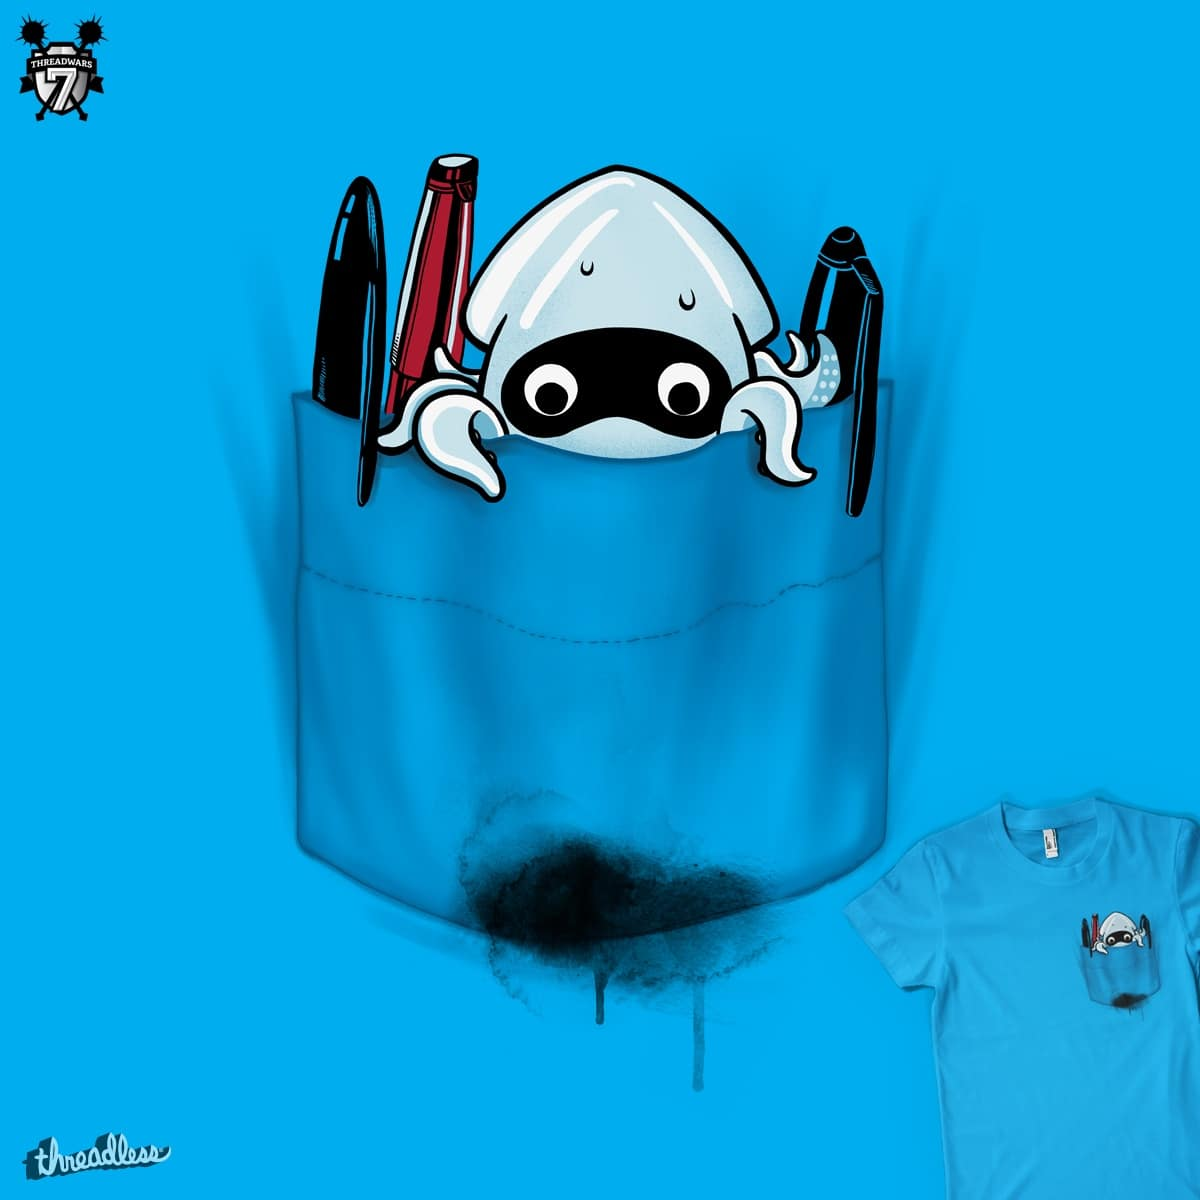 Spilled Memorabilia by MadKobra on Threadless